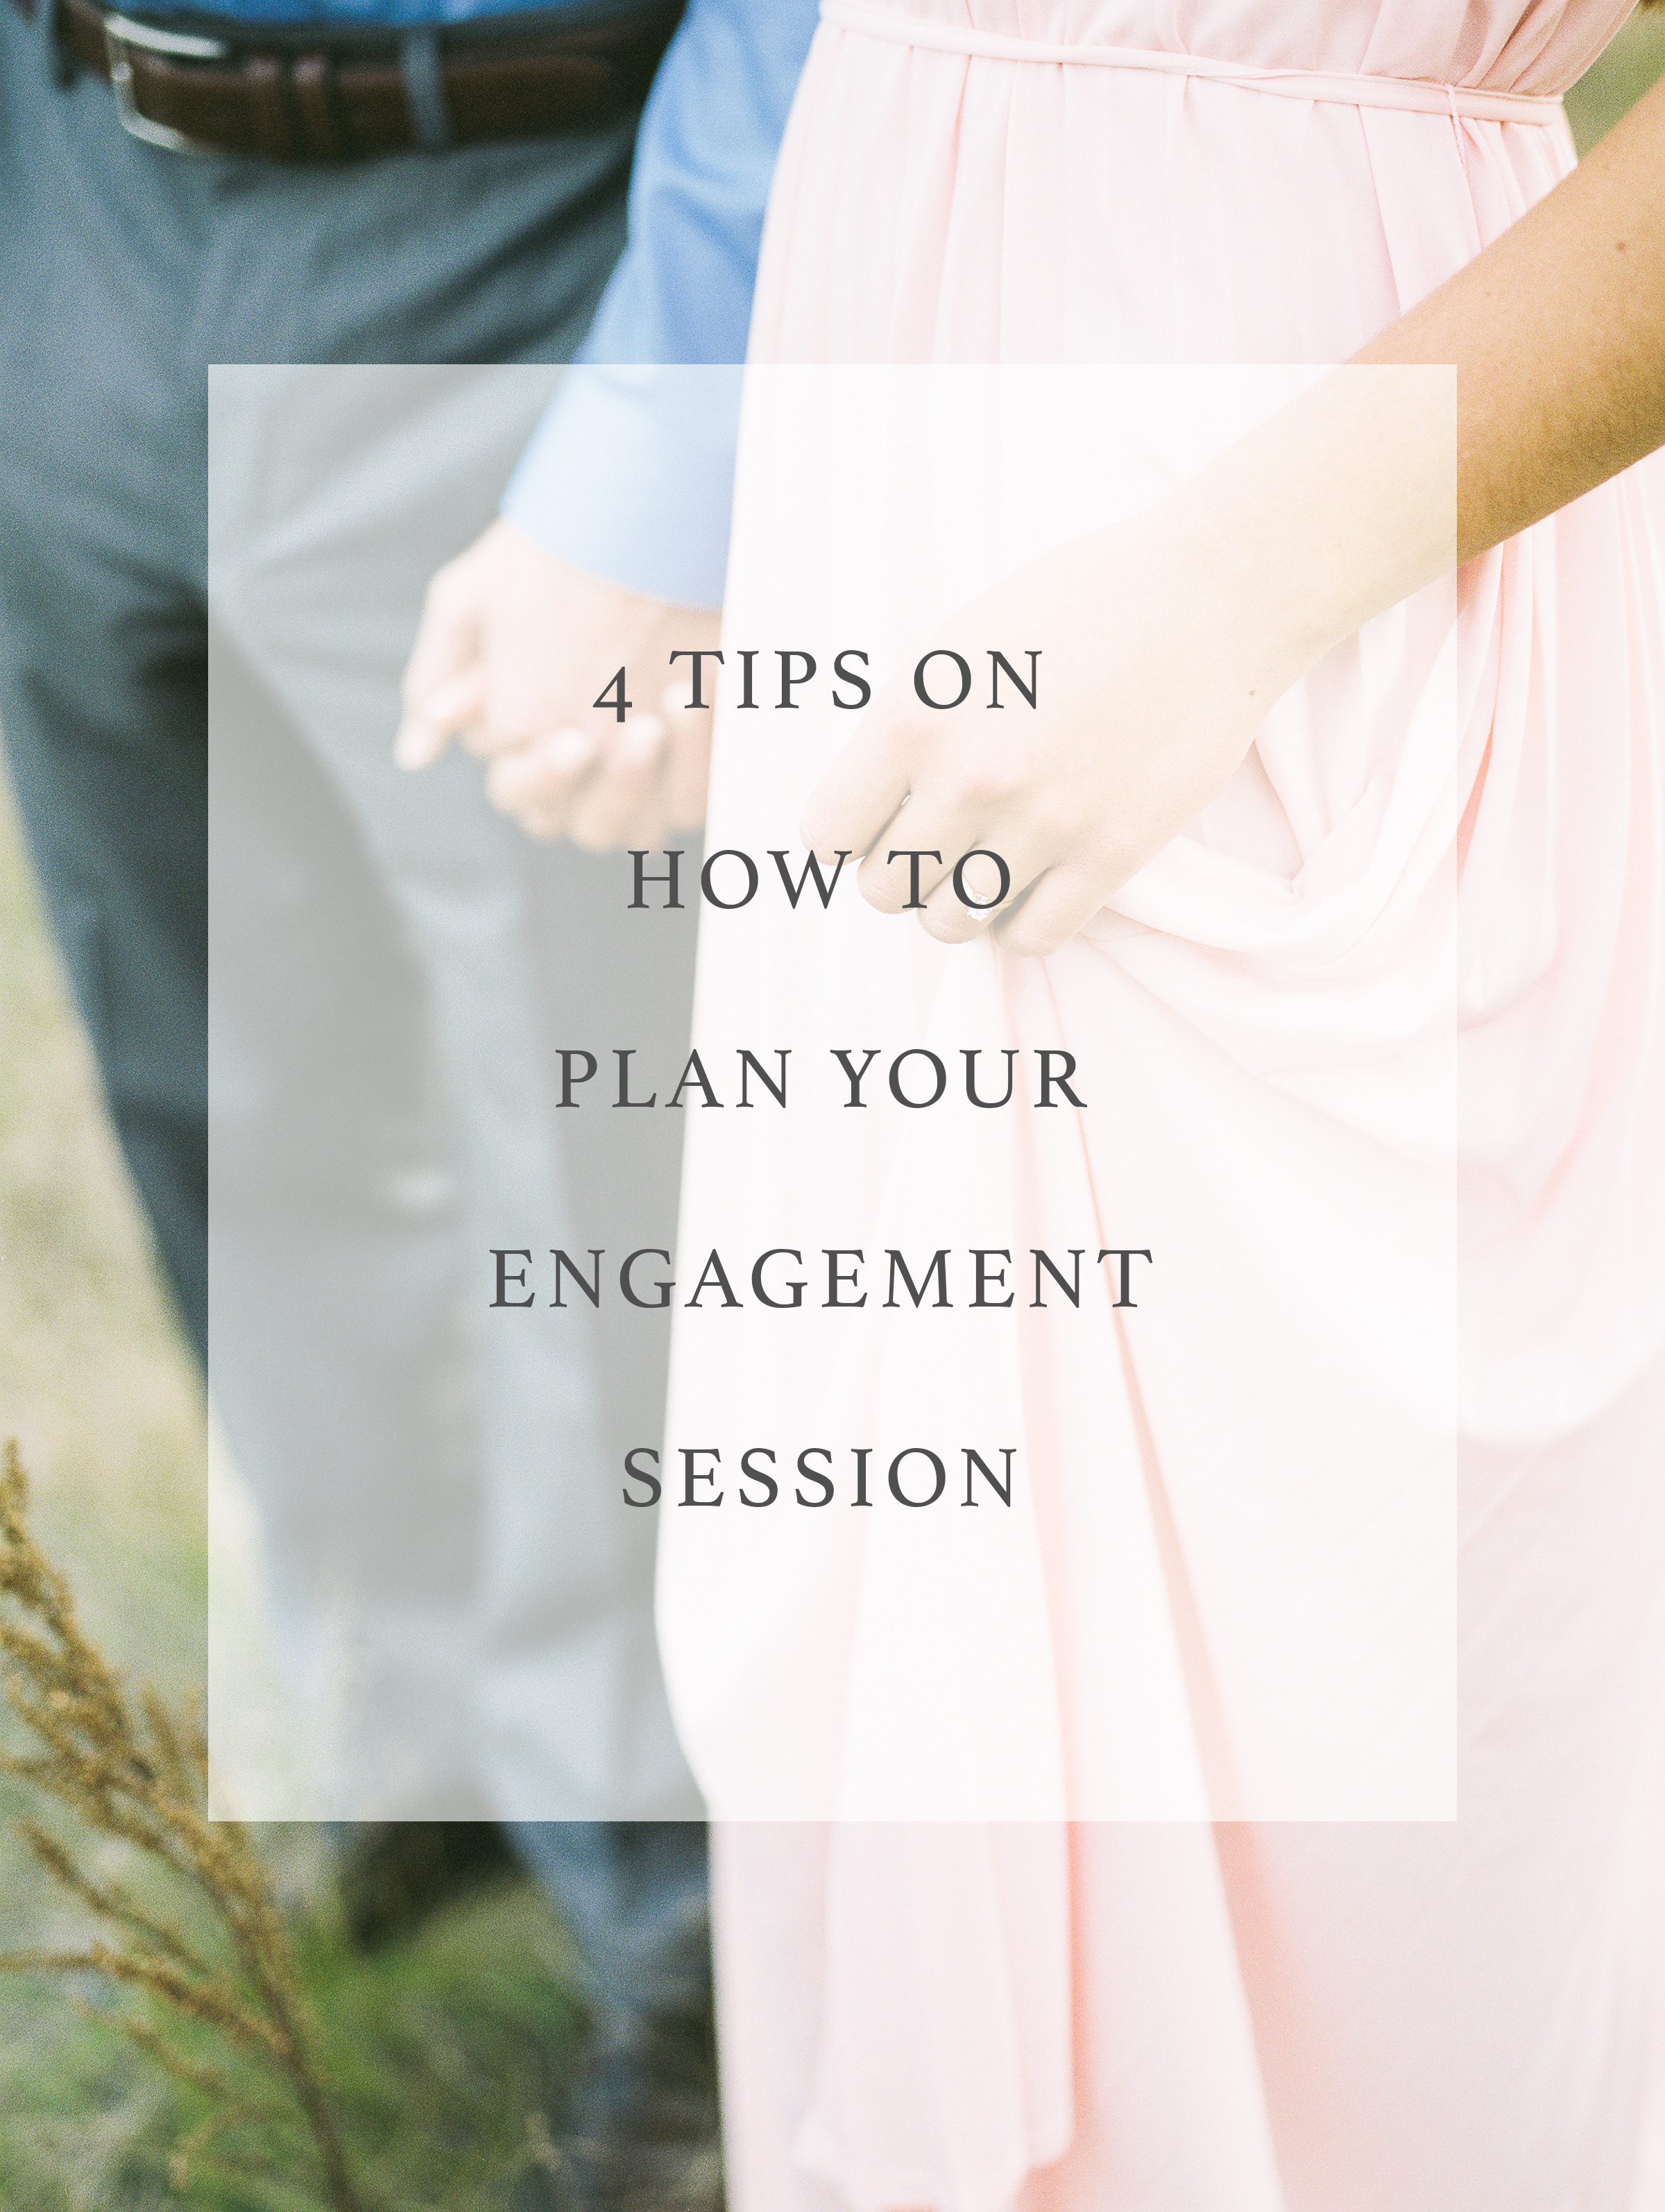 4 Tips On How to Plan Your Engagement Session - Photos and Written by Keila Marie Photography